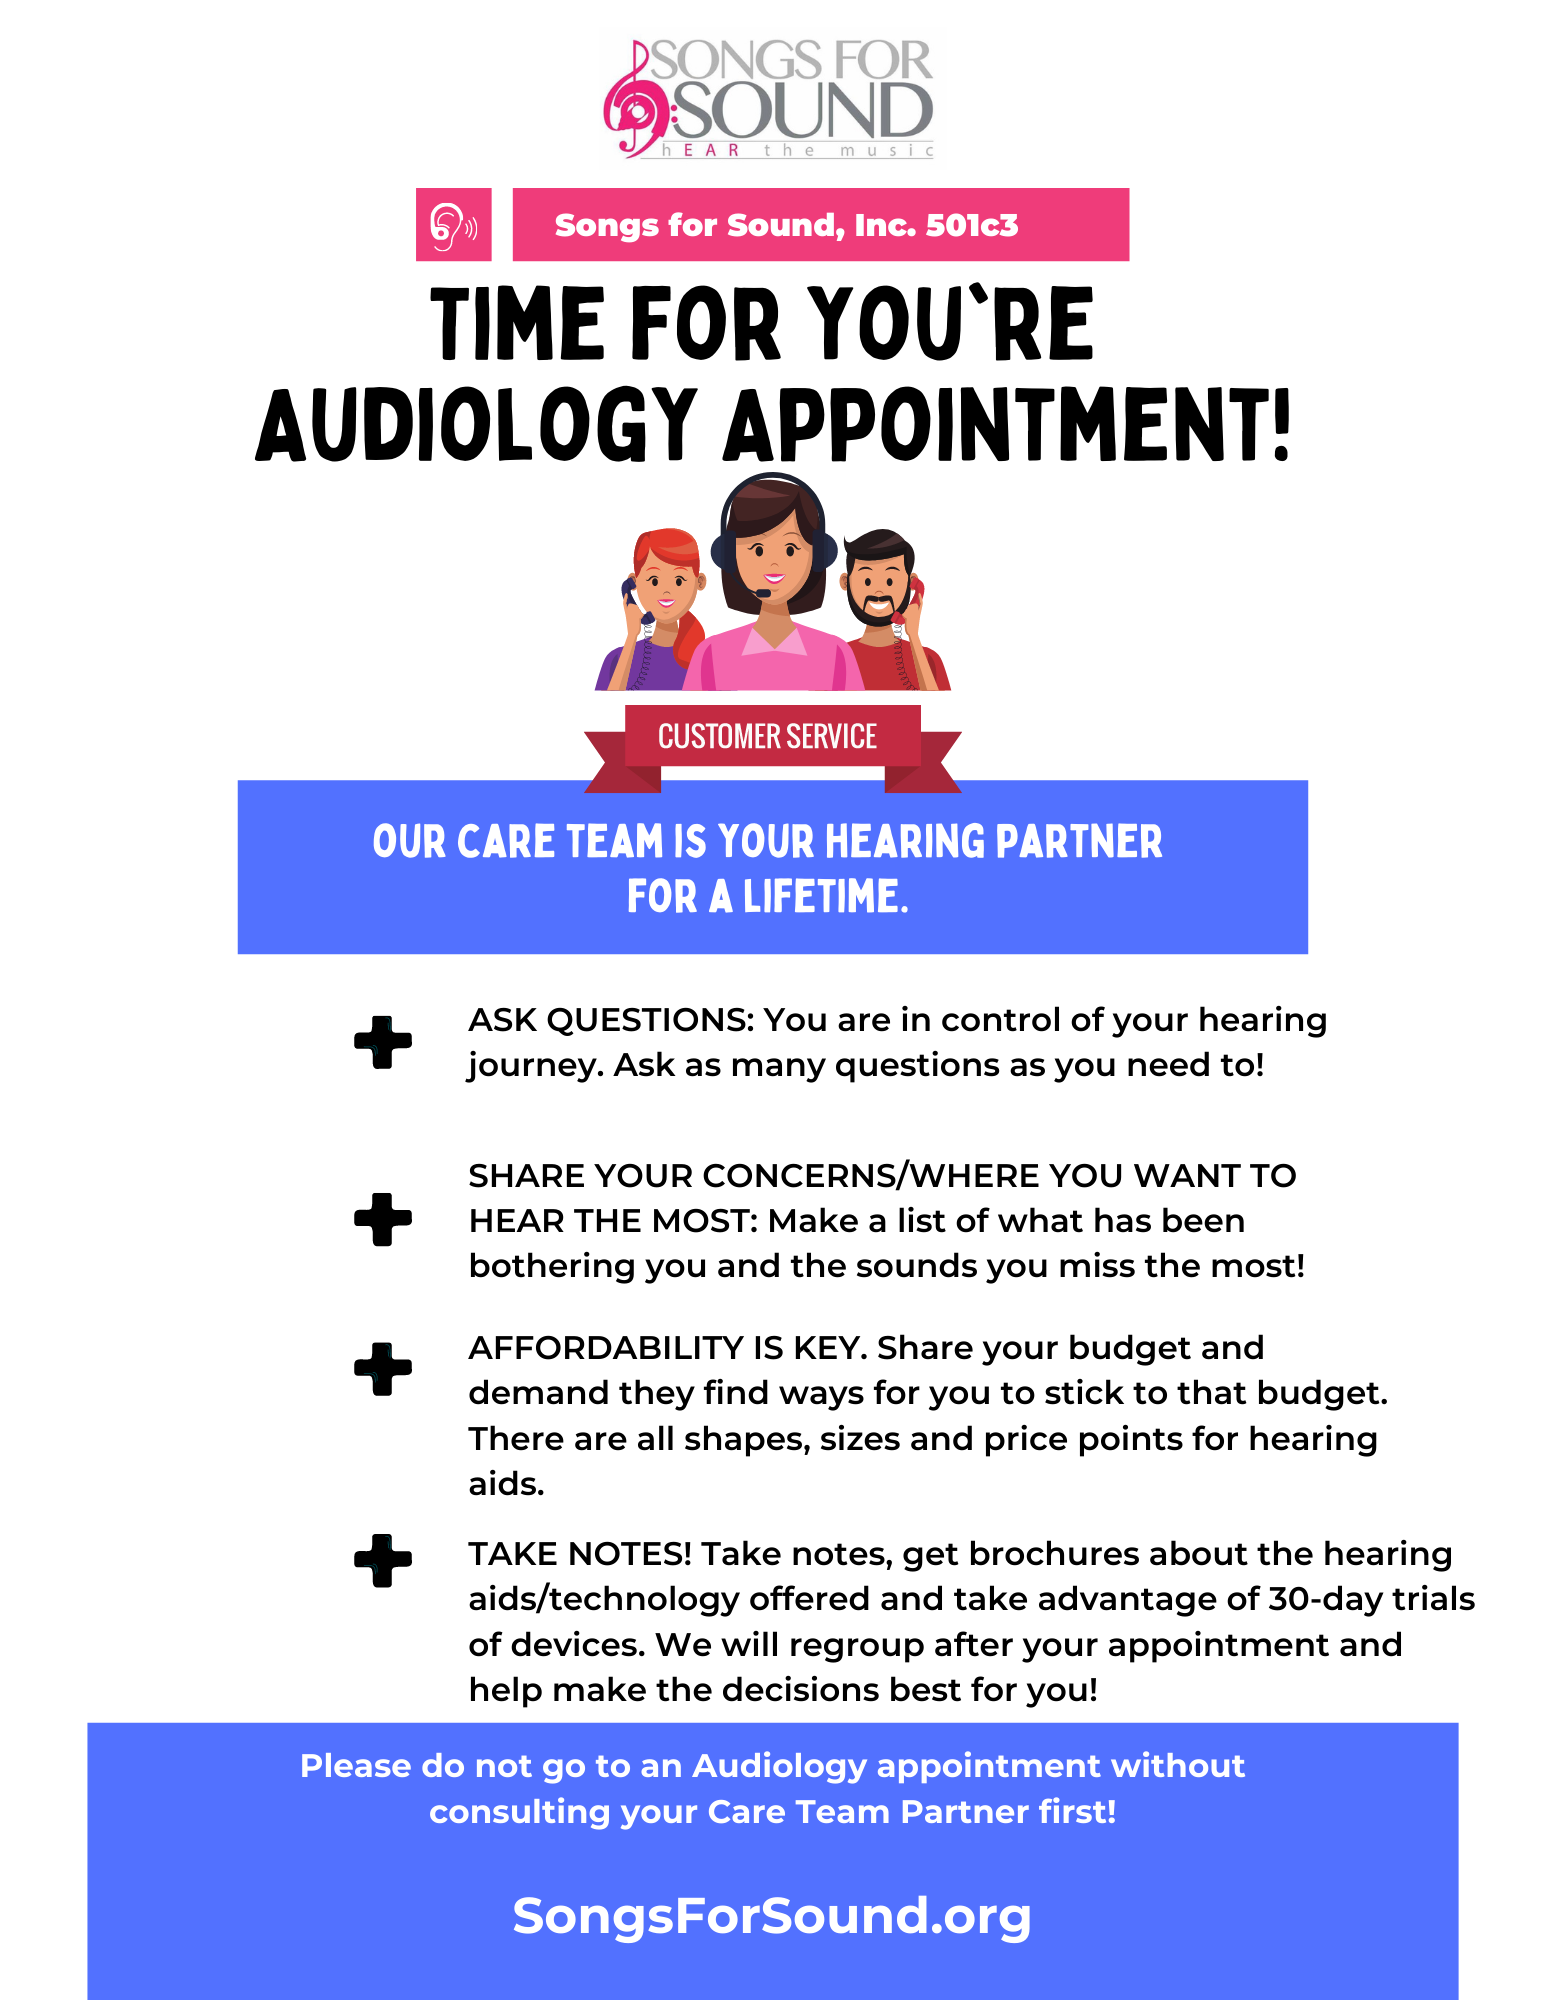 Time for Your Audiology Appointment